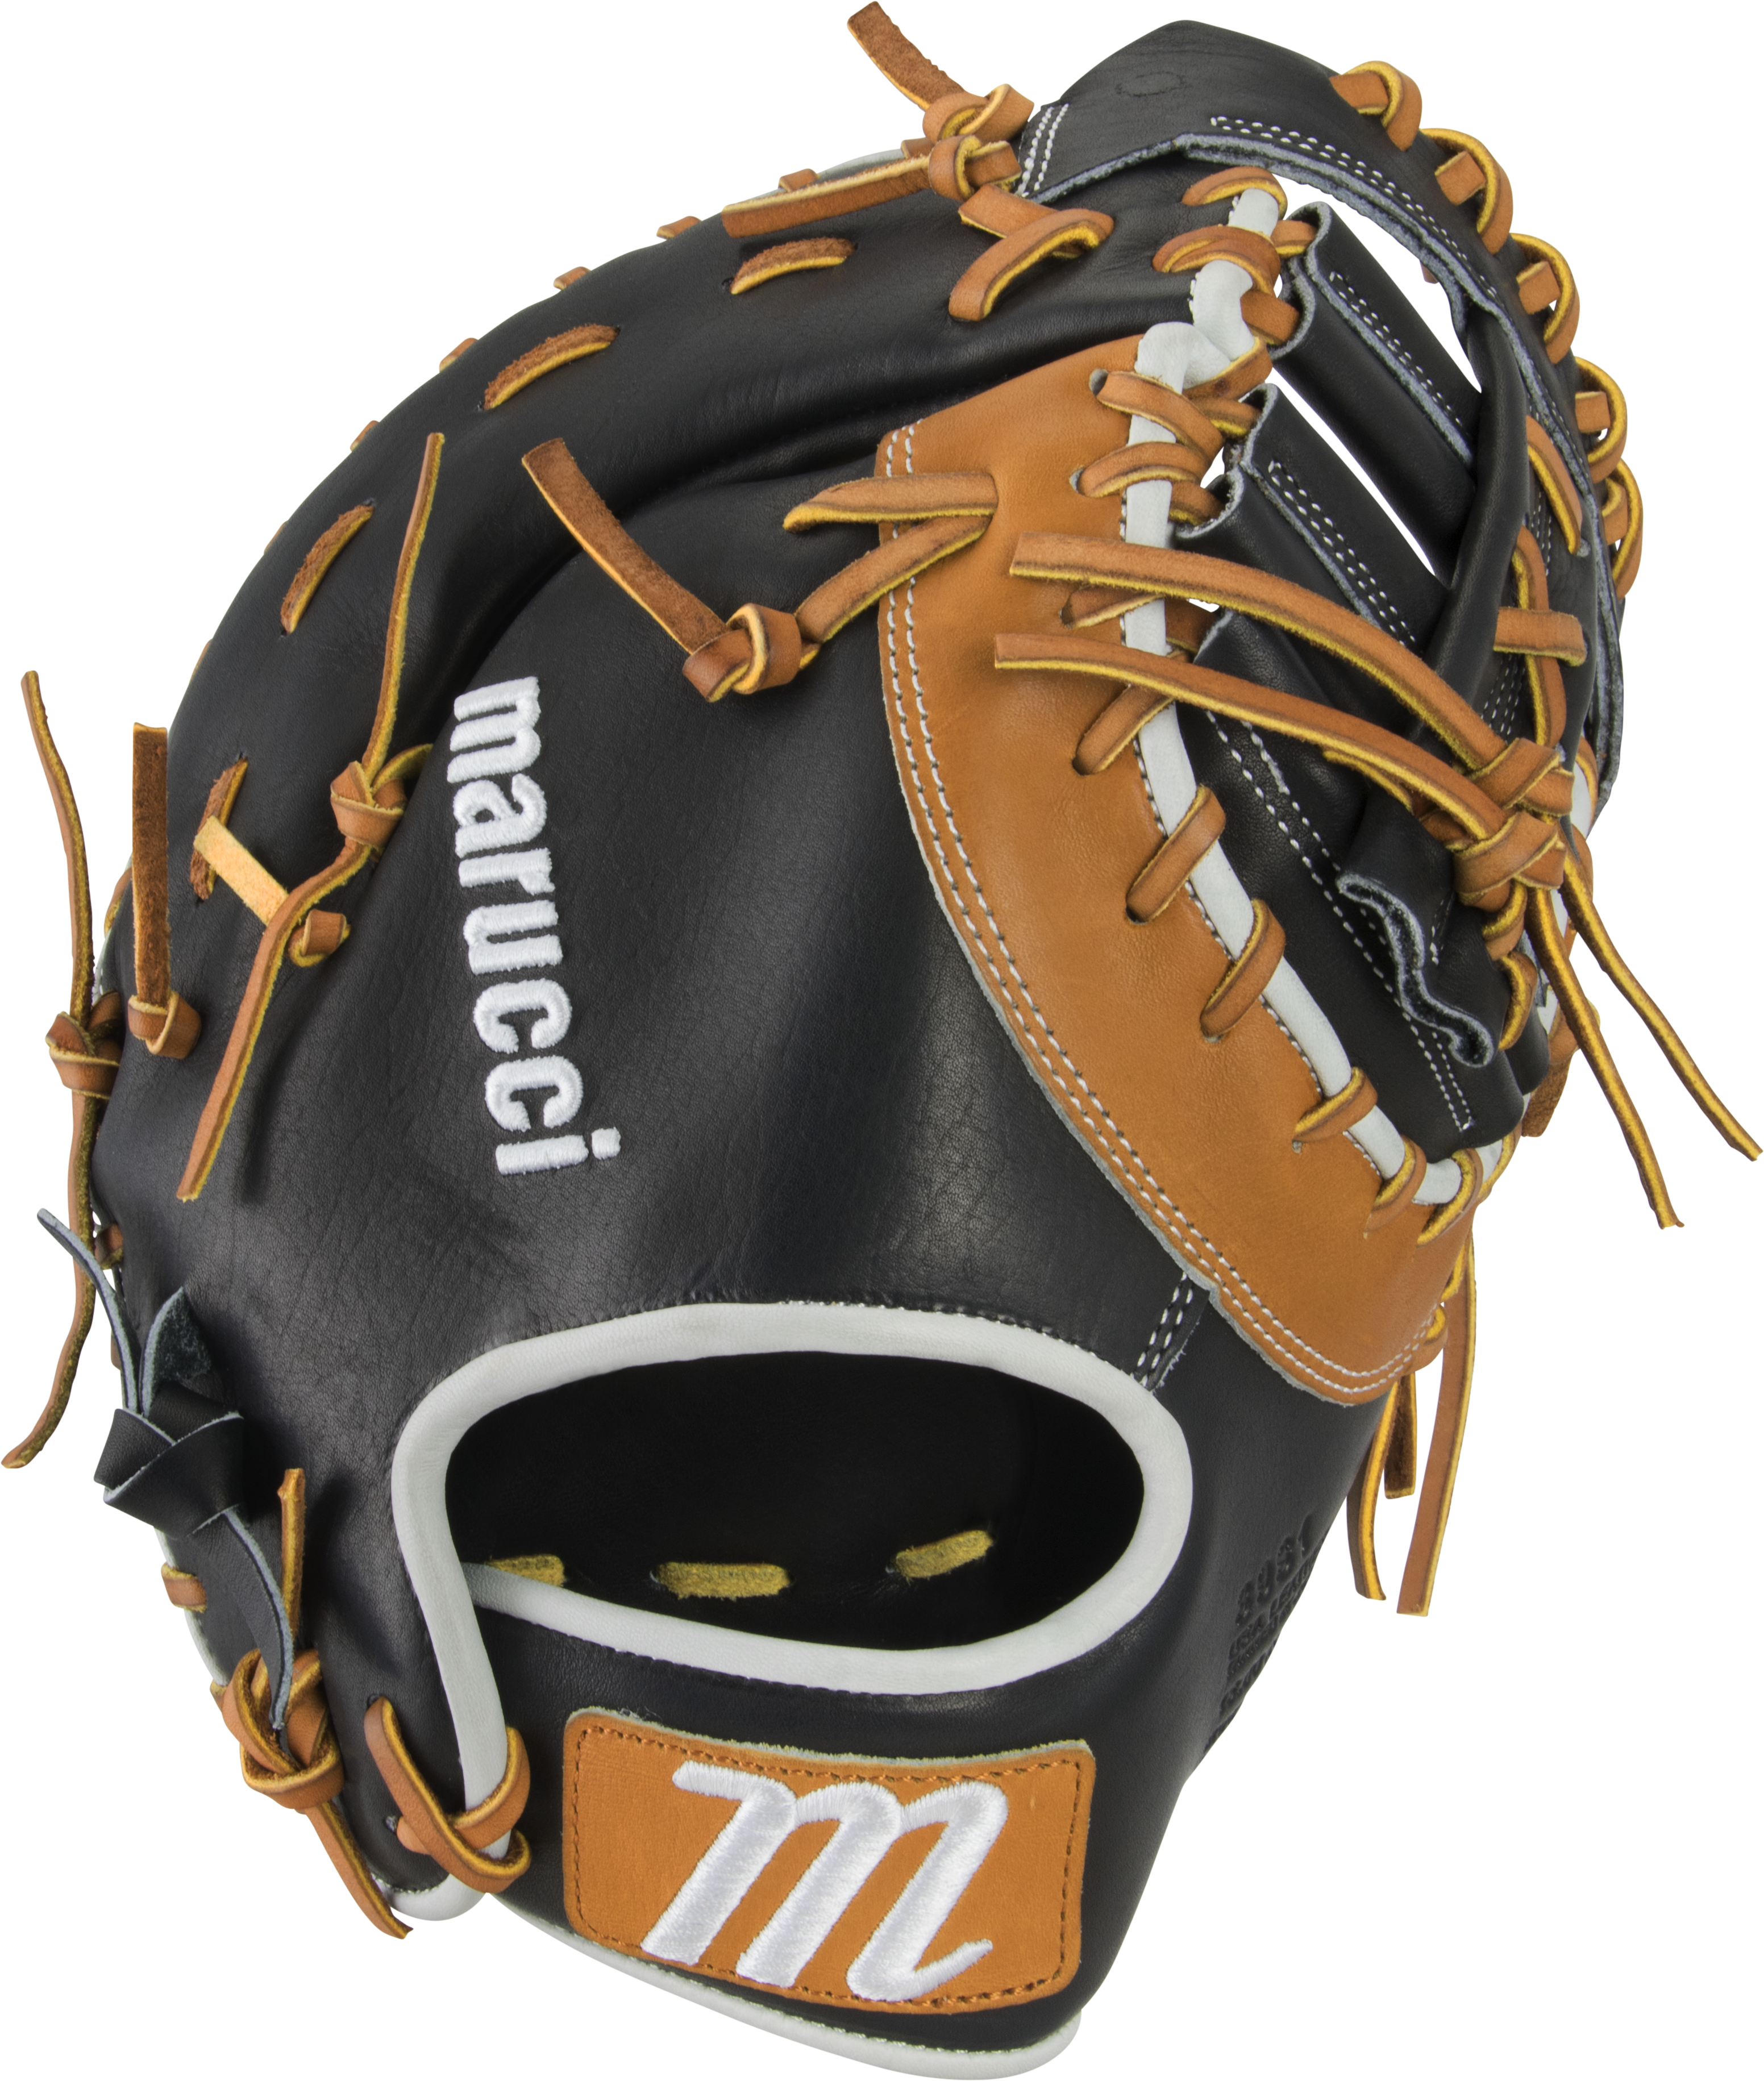 marucci-capitol-13-first-base-mitt-baseball-glove-39si-two-bar-post-web-right-hand-throw MFGCP39S1-BKTF-RightHandThrow   849817099322 Premium Japanese-tanned USA Kip leather combines ideal stiffness with lightweight feel